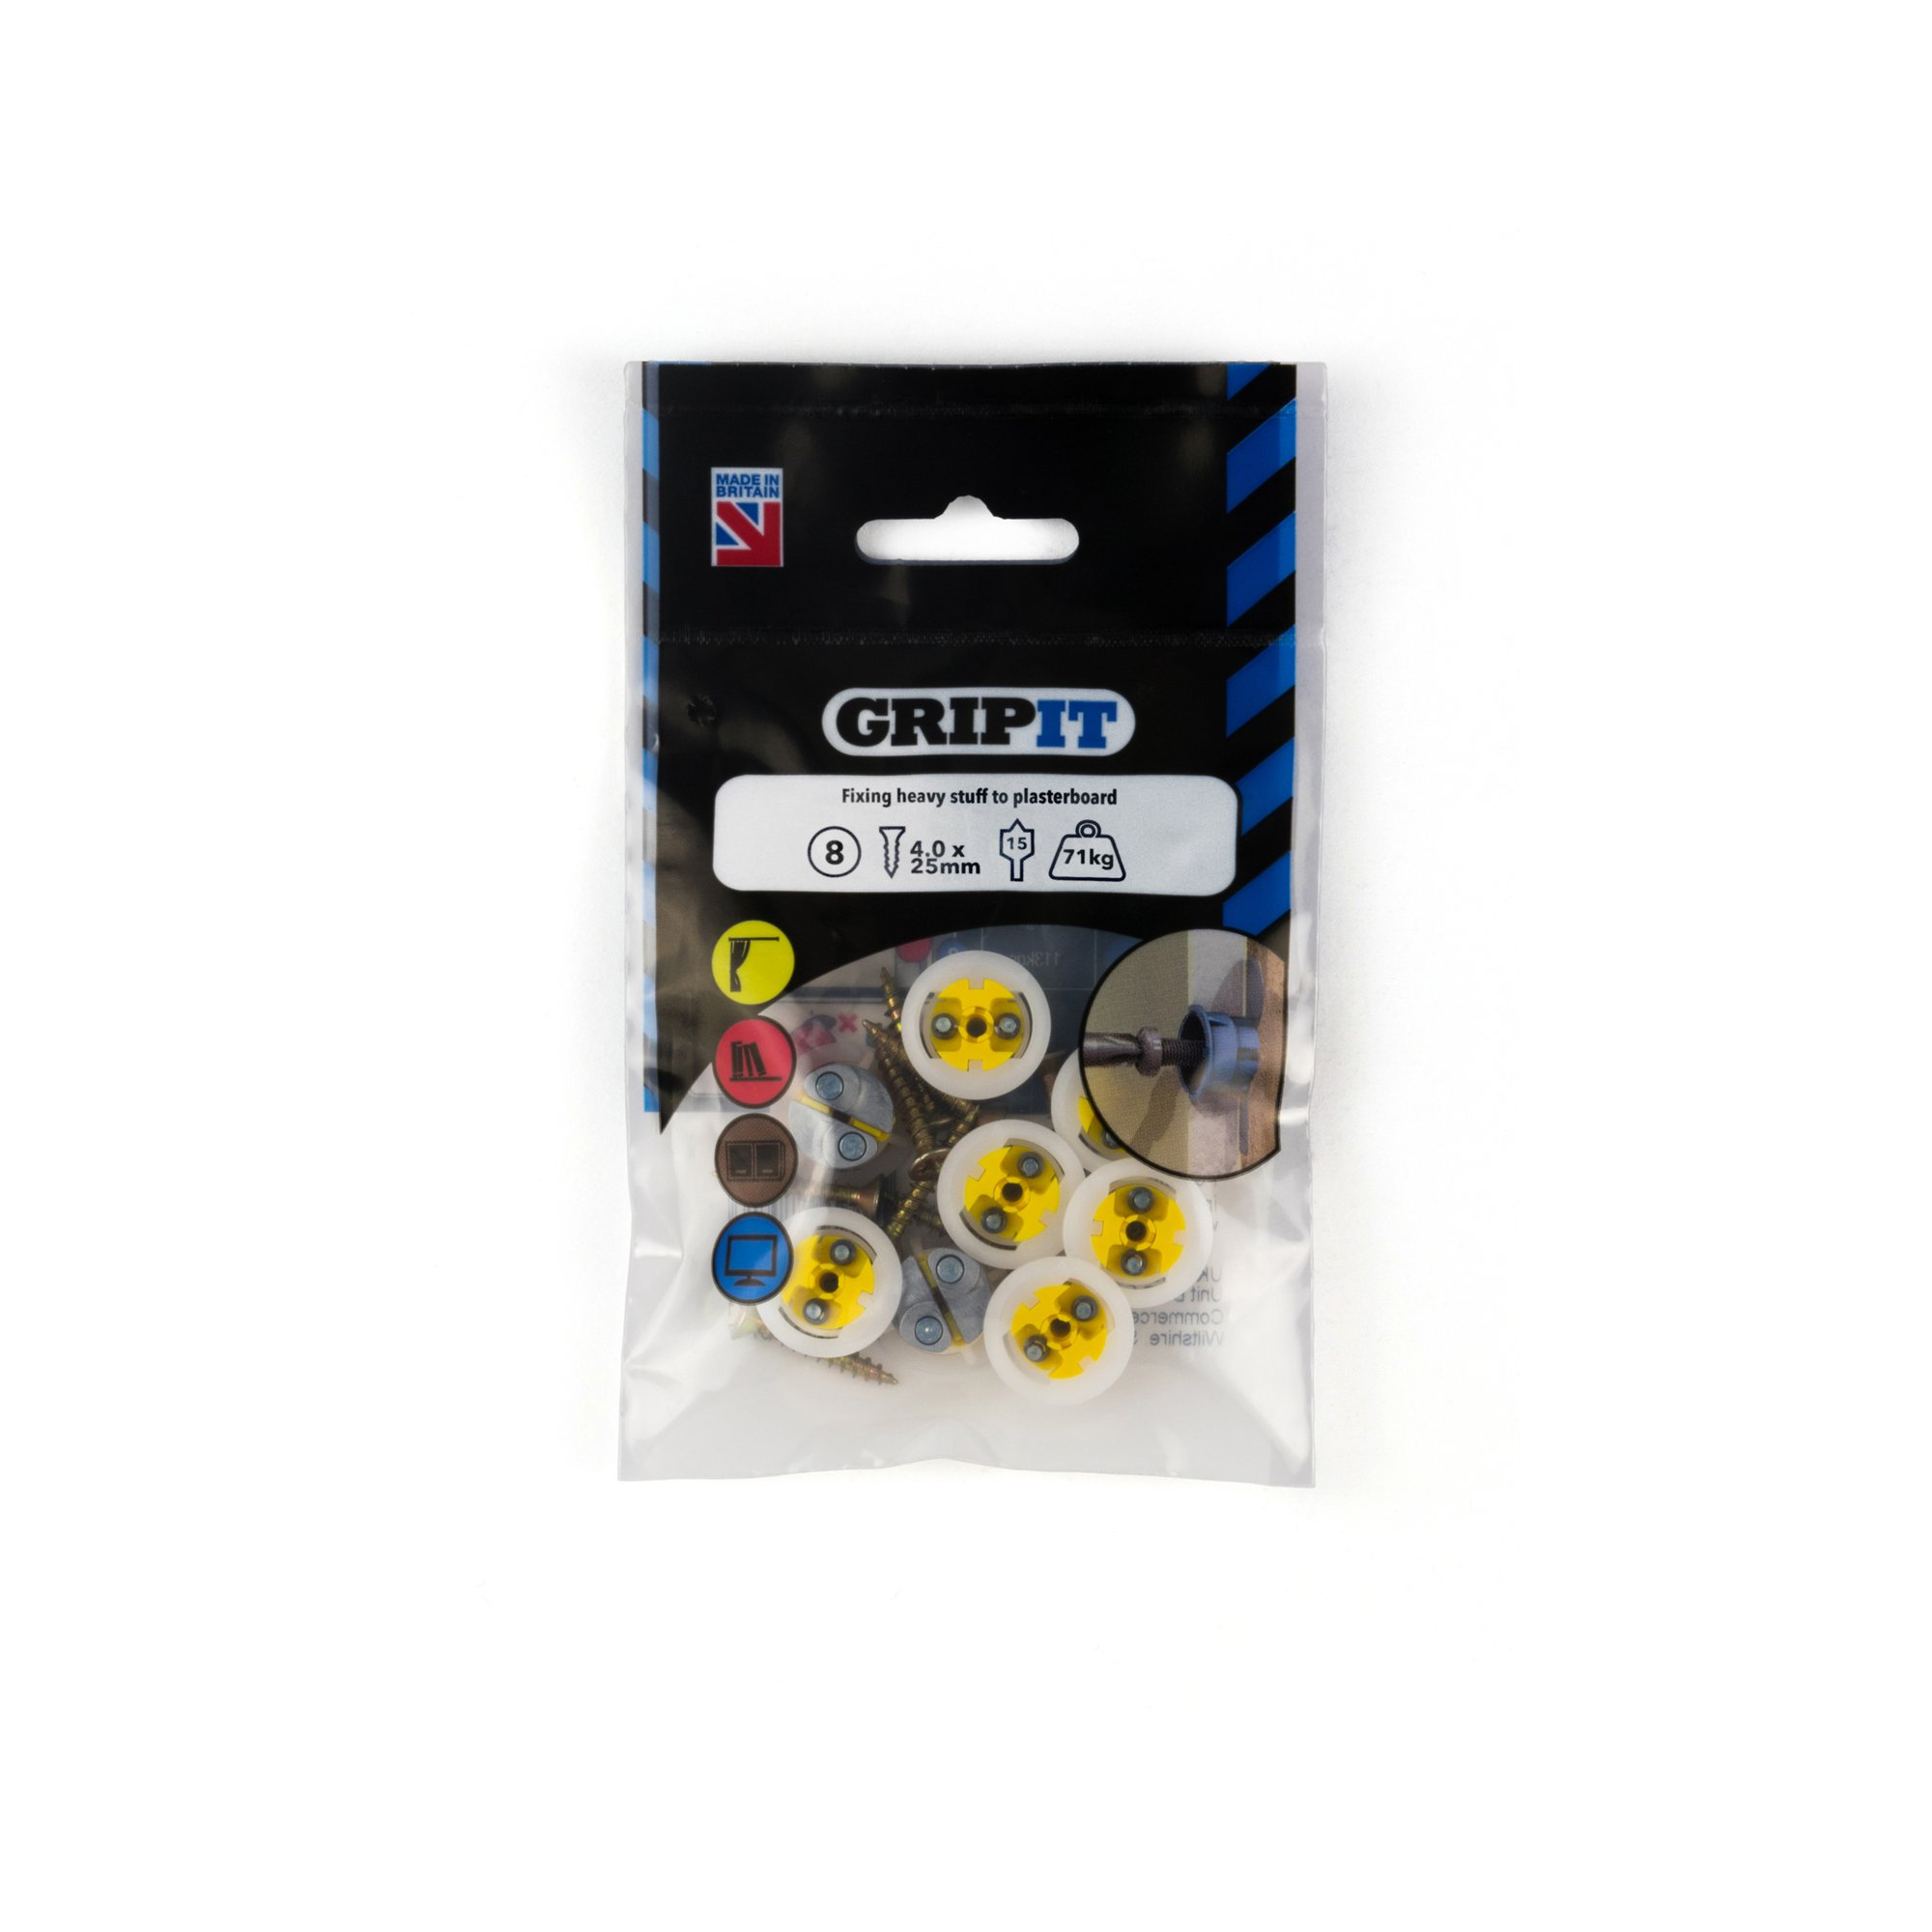 GRIPIT FIXINGS - YELLOW 15MM FIXING PACK - 152-258 - PK8